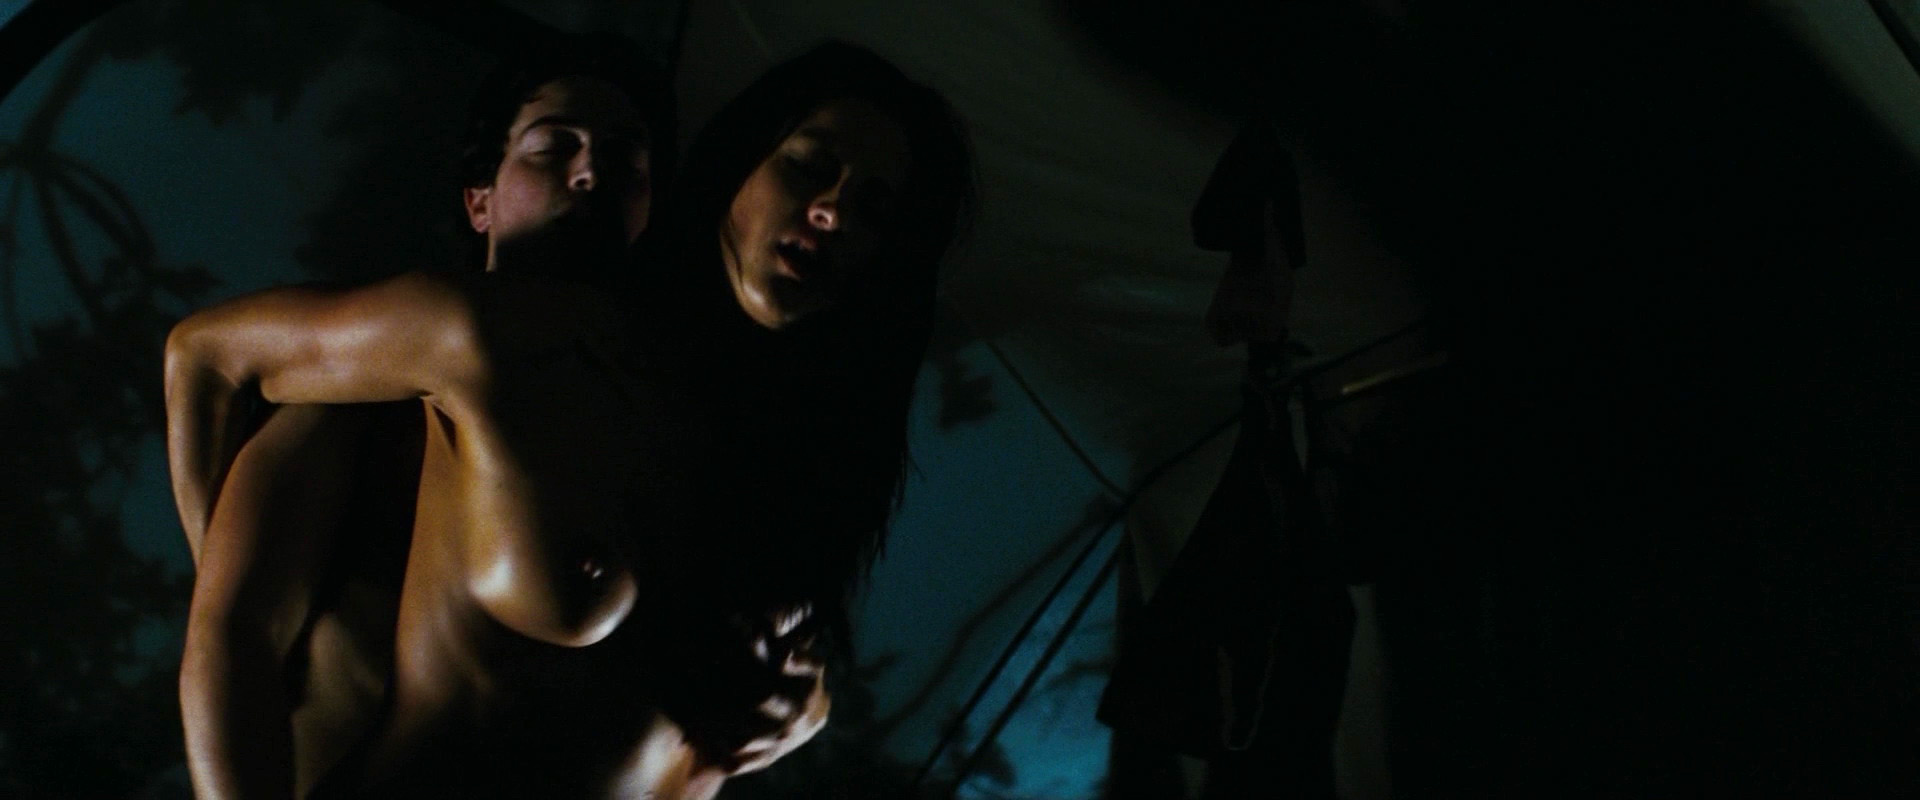 America Olivo Sex Scene watch online - america olivo – friday the 13th (2009) hd 1080p